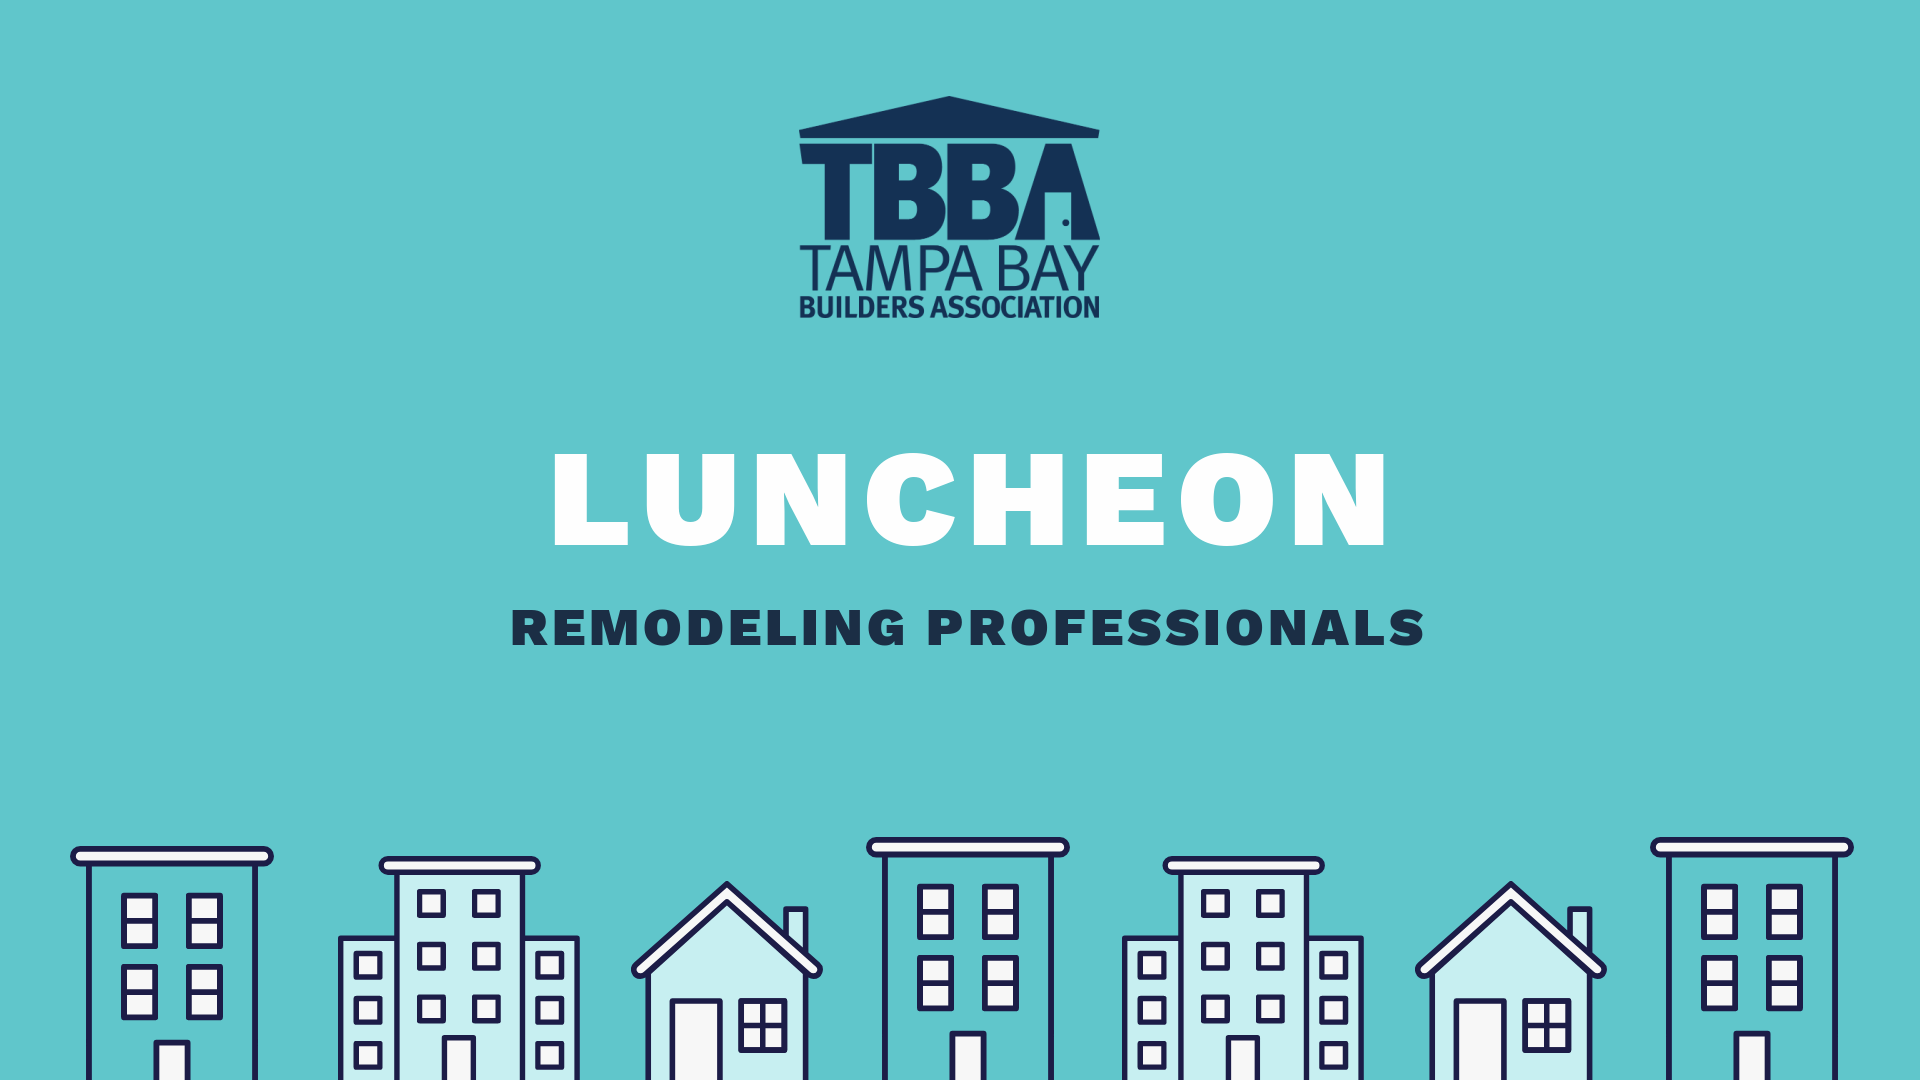 Luncheon for Remodeling Professionals